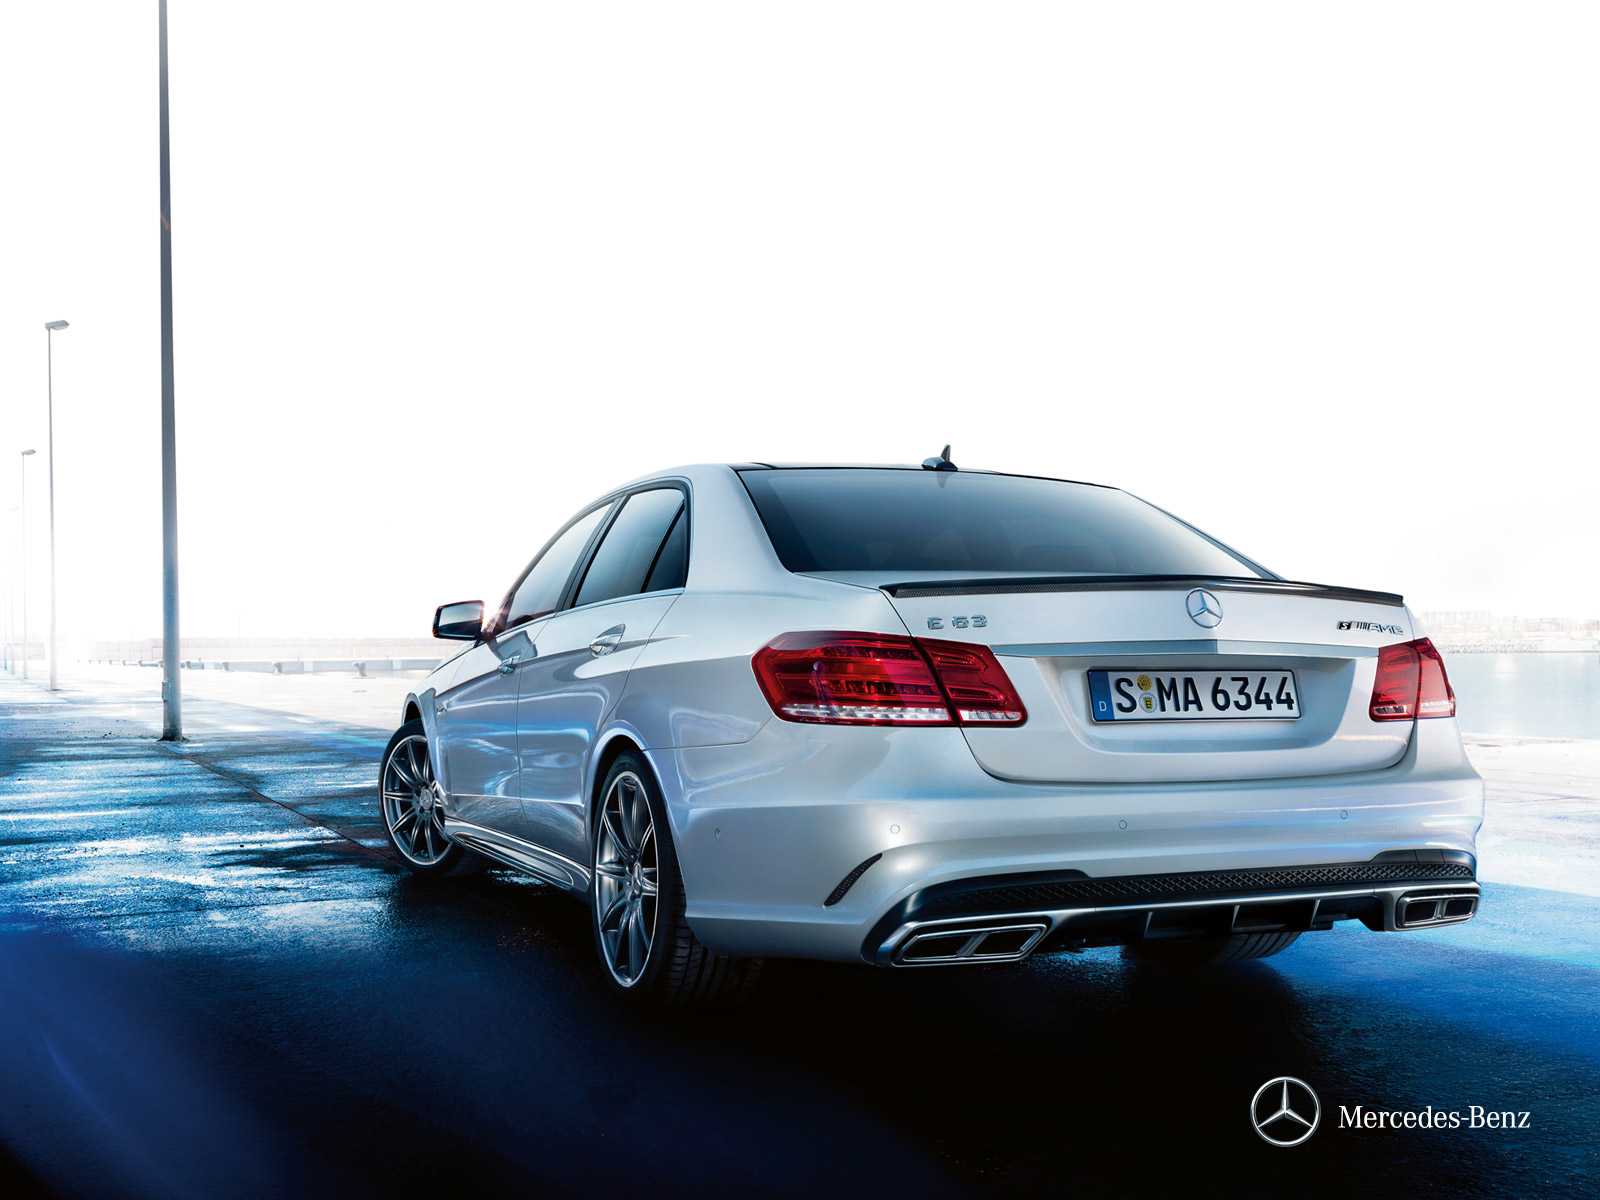 mercedes-benz-e-class-saloon-w212_wallpaper_07_1600x1200_03-2013